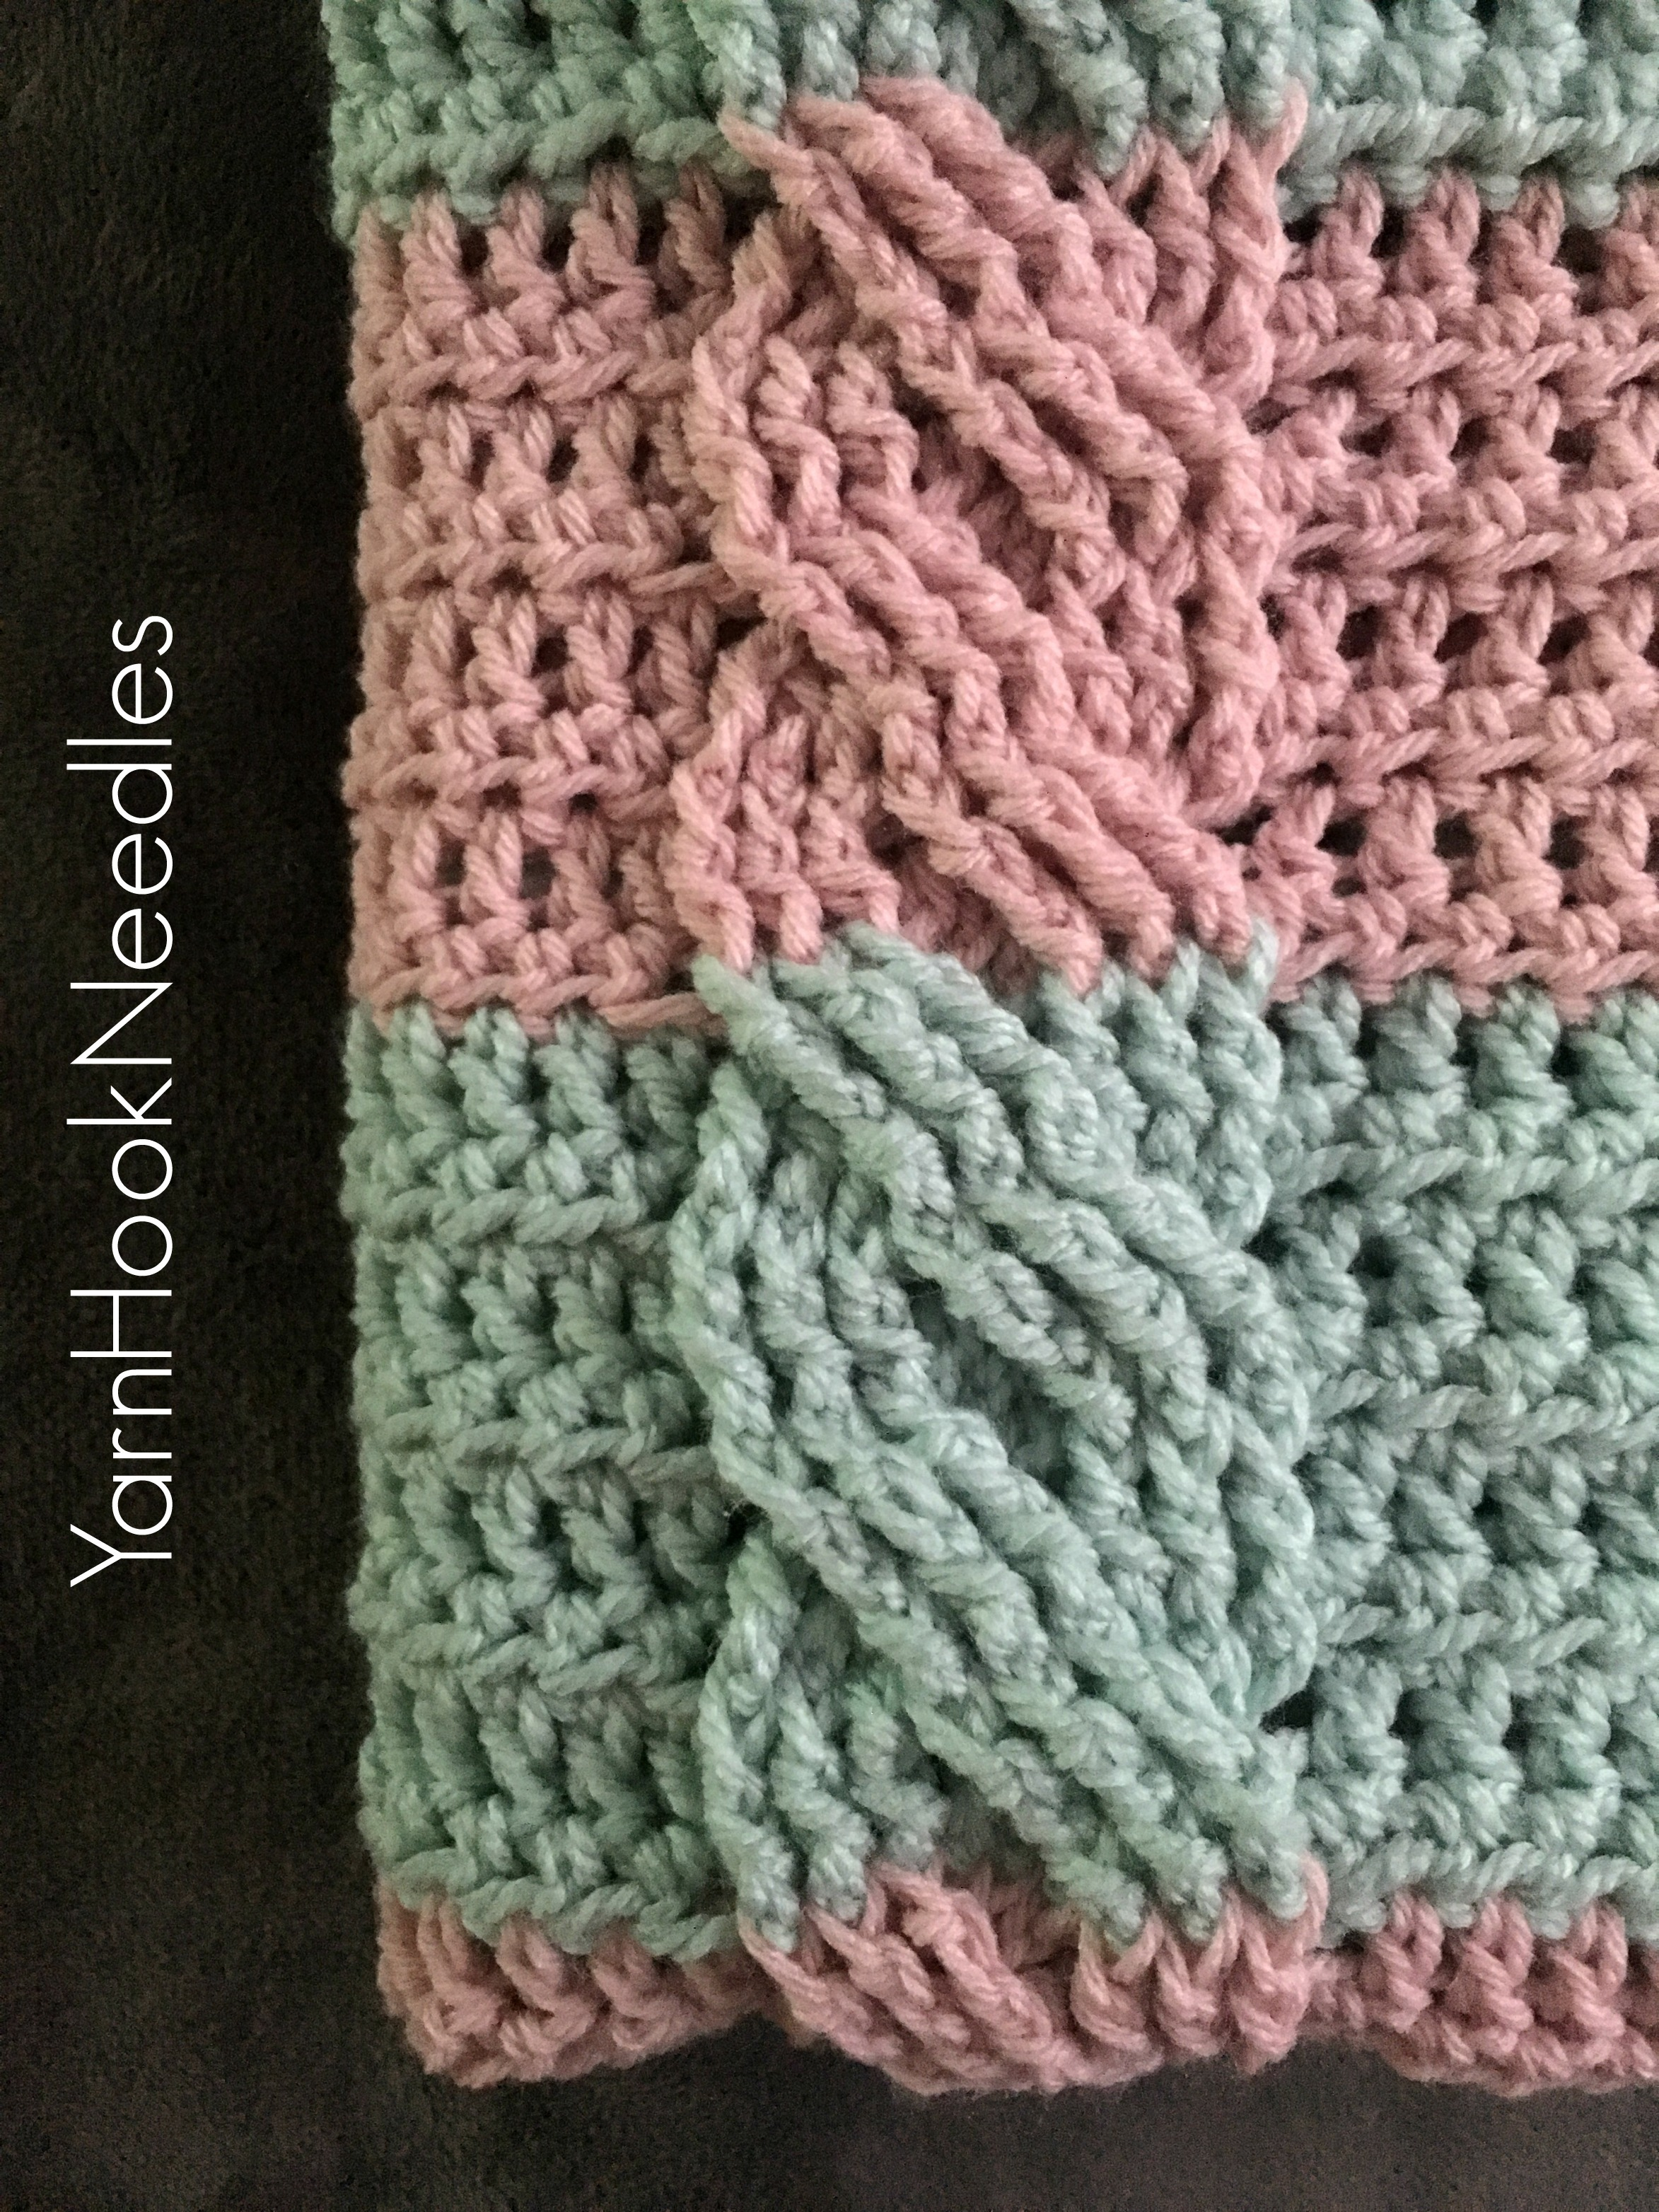 crochet cable blanket with free pattern